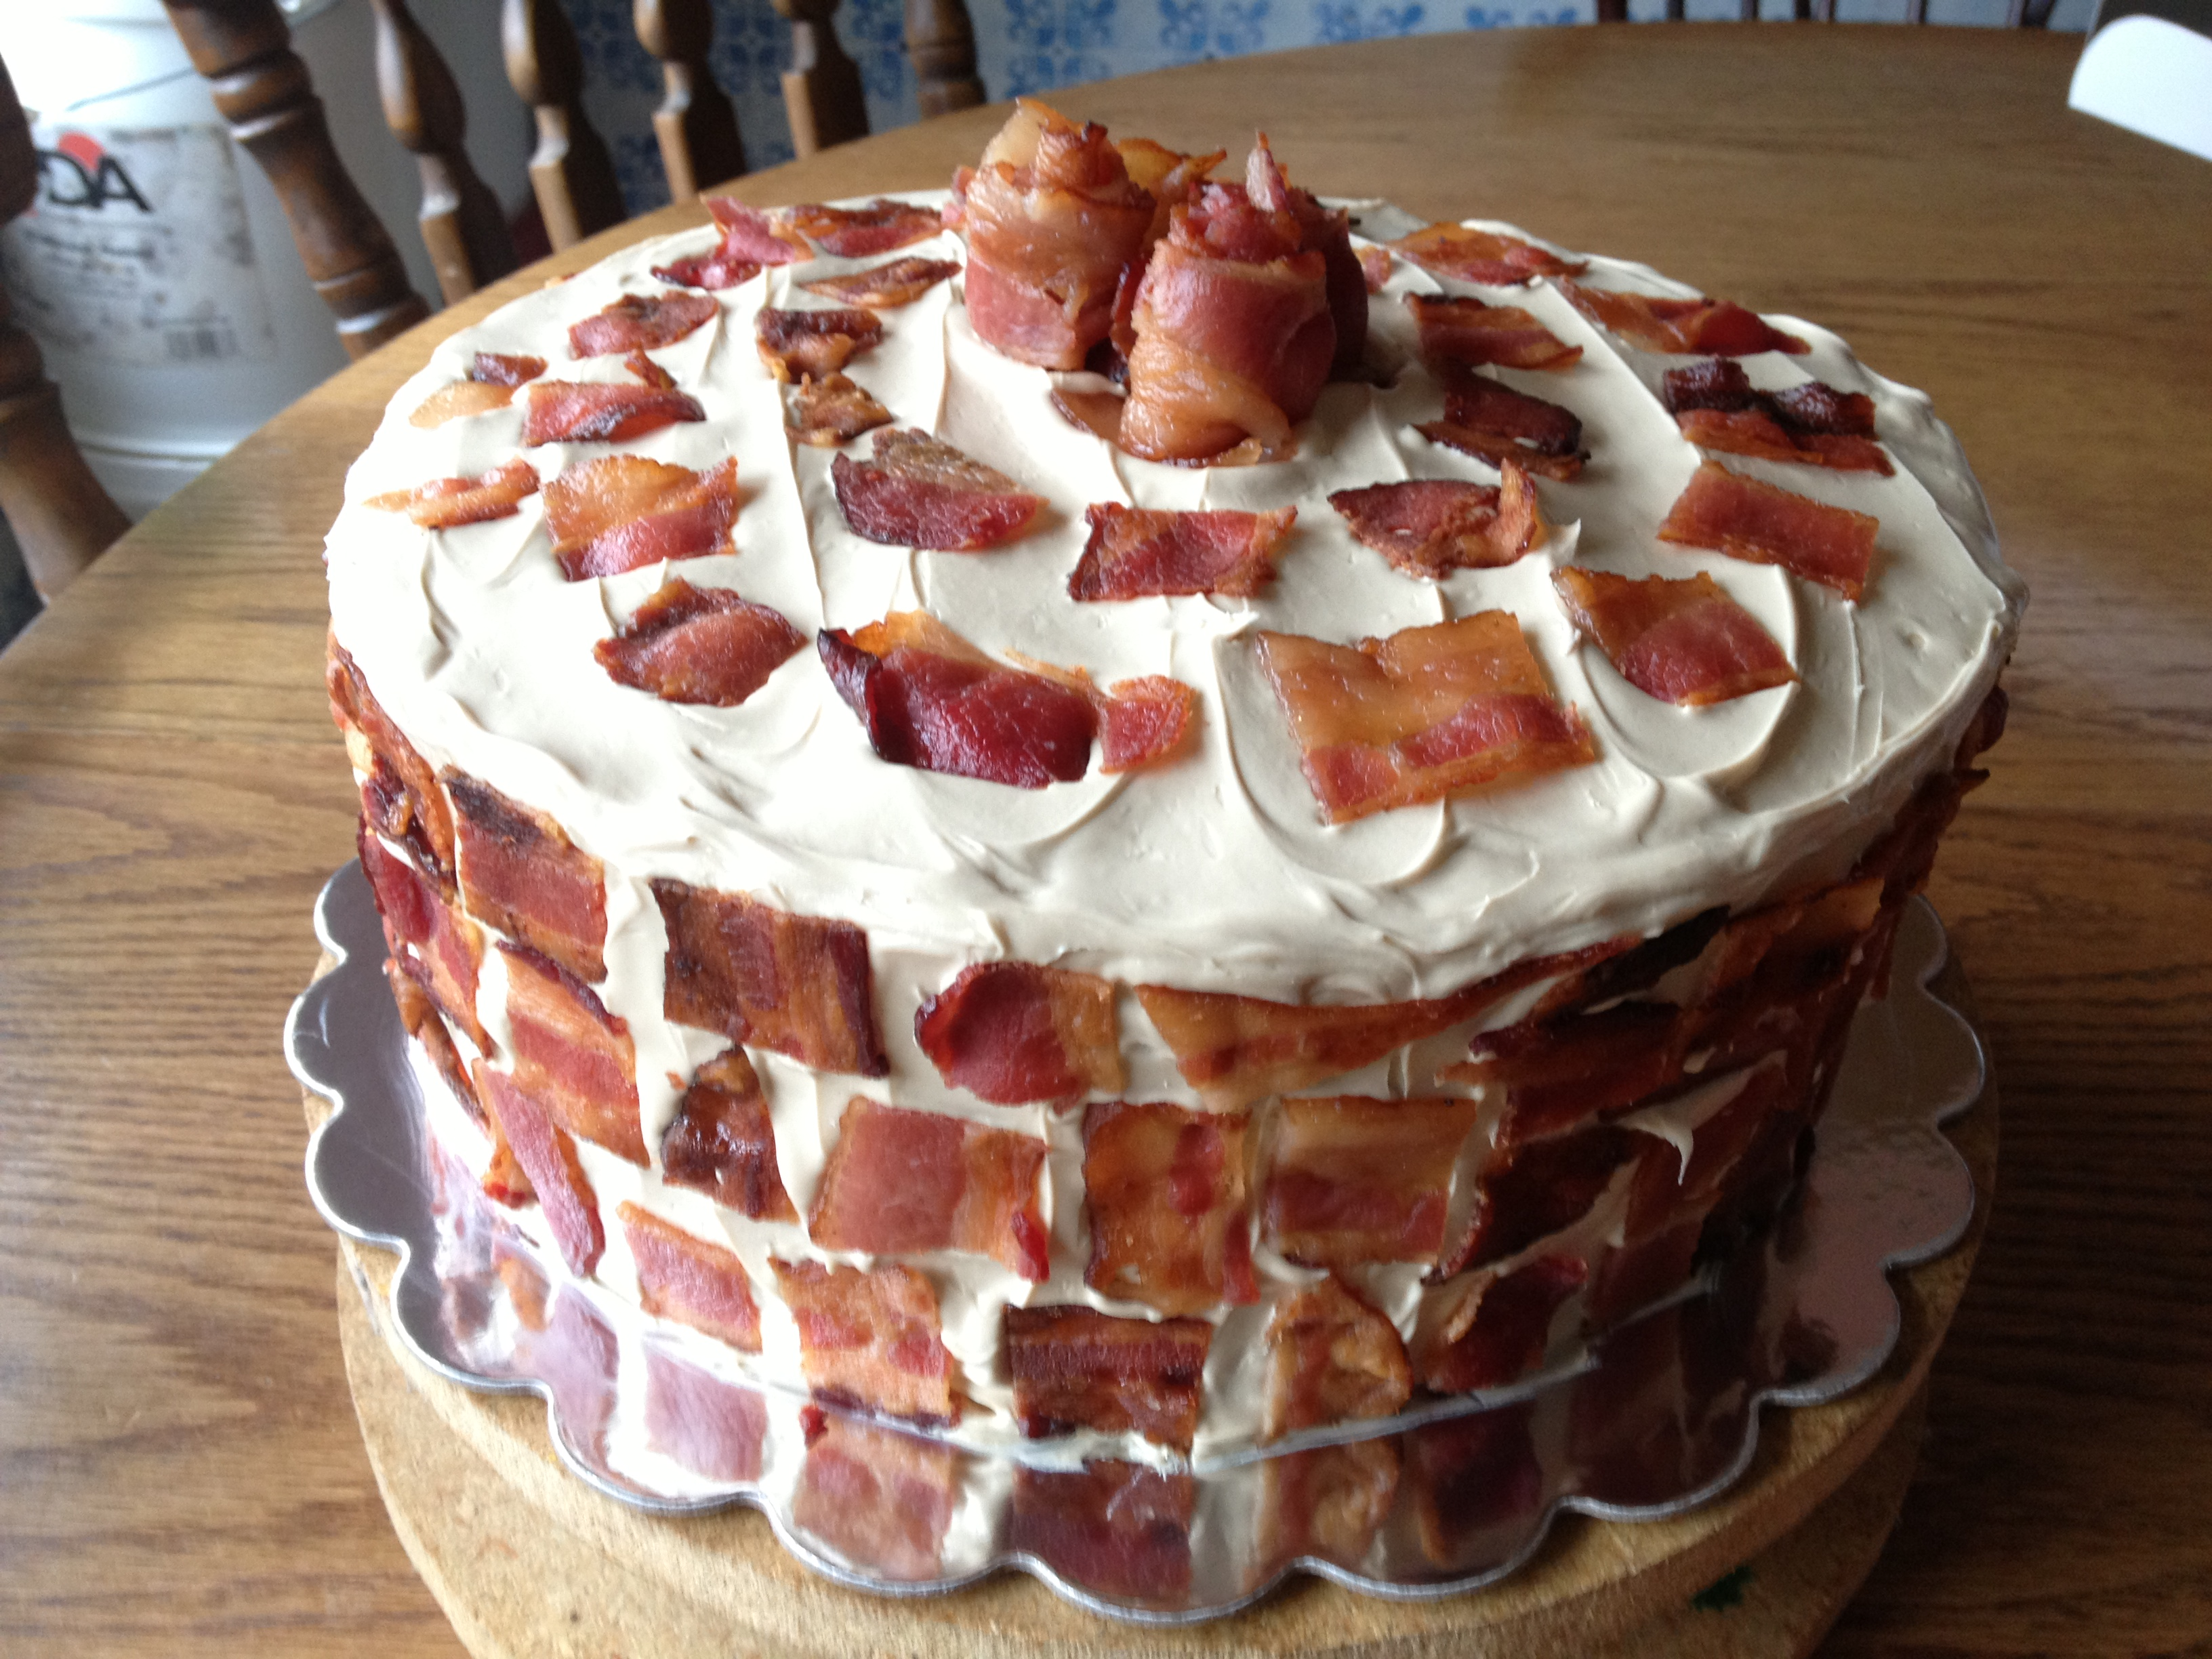 Image Bacon Cake 31g Creepypasta Wiki Fandom Powered By Wikia